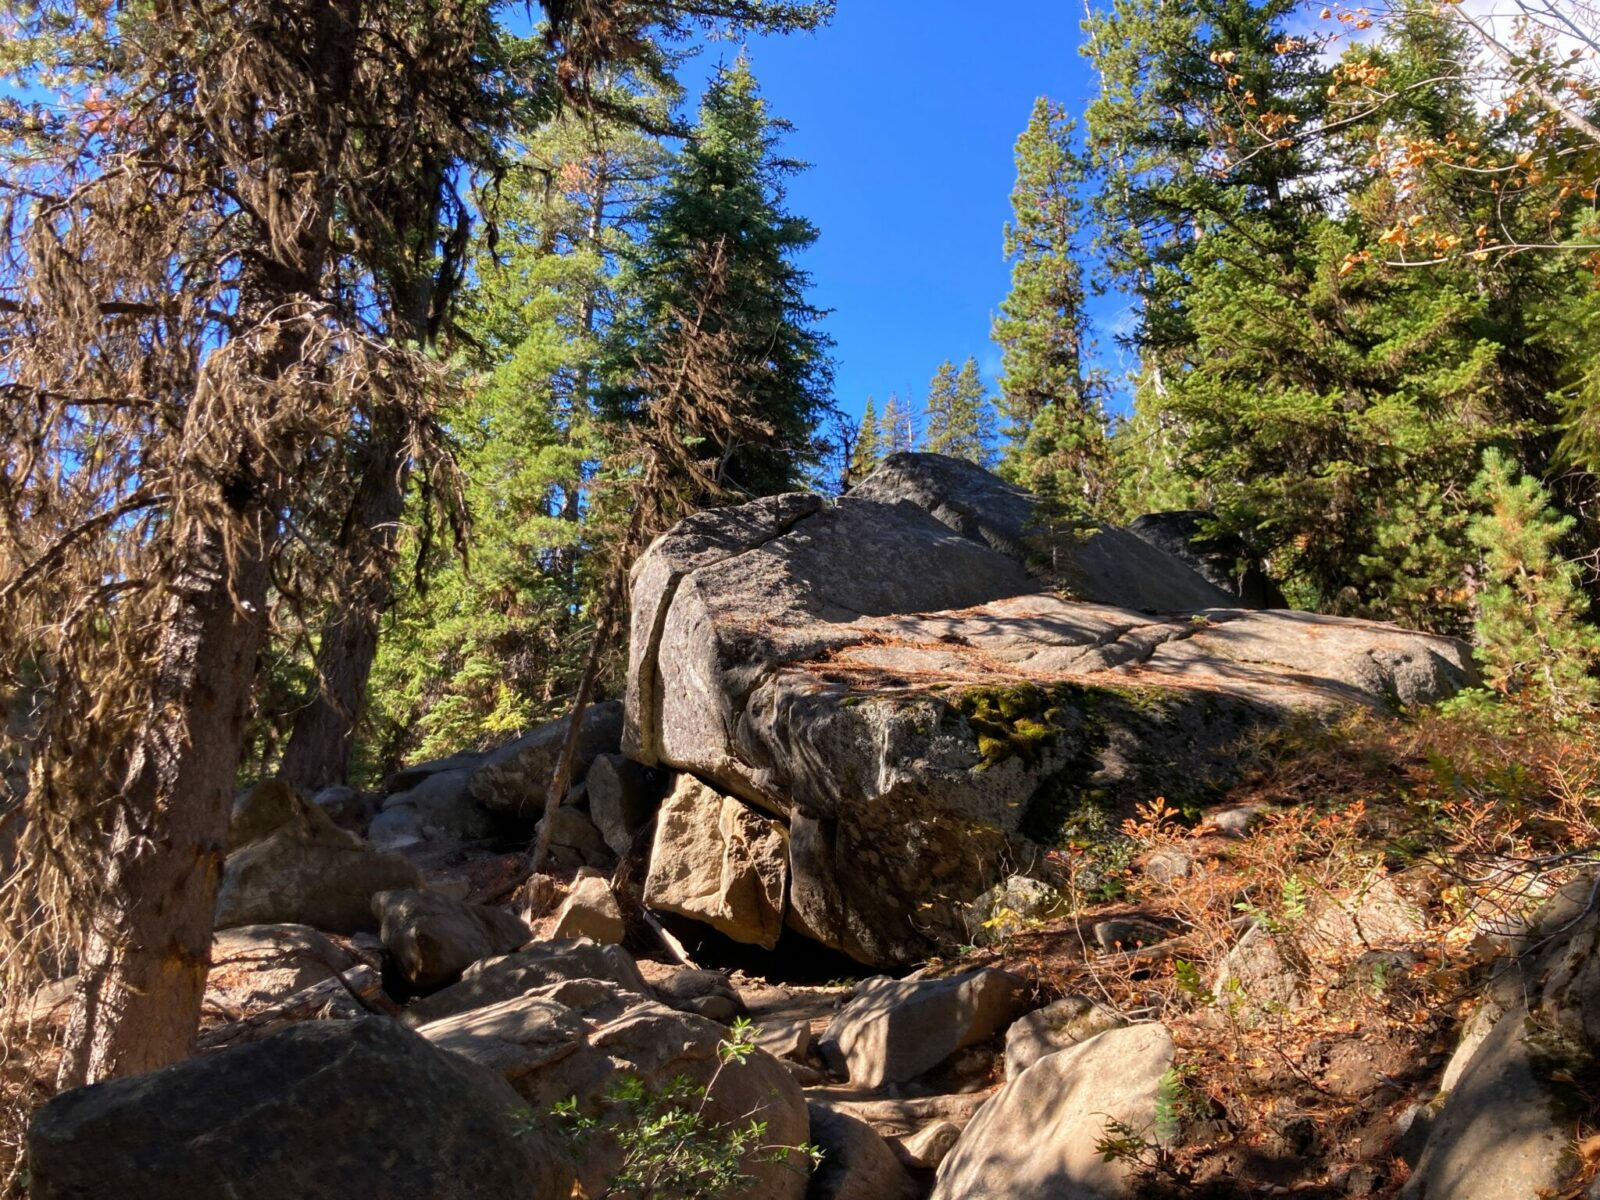 Boulders in a forest on a sunny day